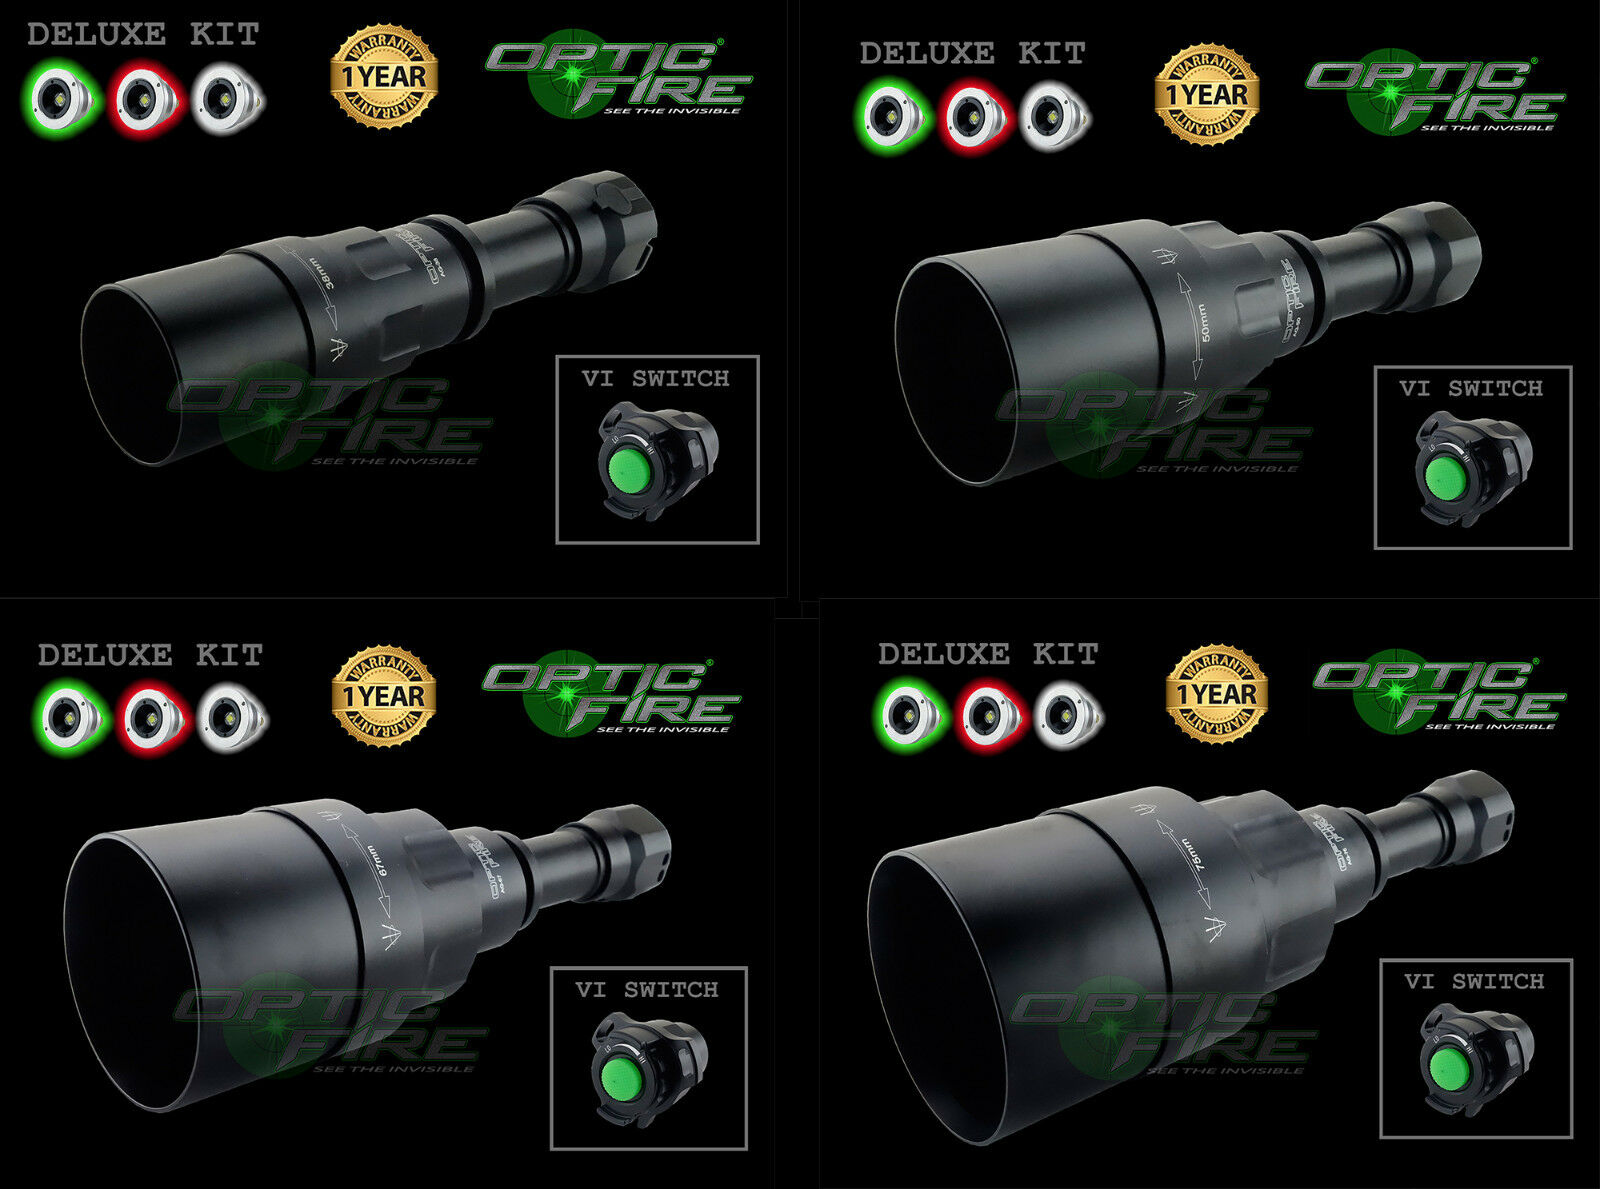 Opticfire® AG-VI  3 LED High power deluxe hunting torch light lamp lamping kit  considerate service